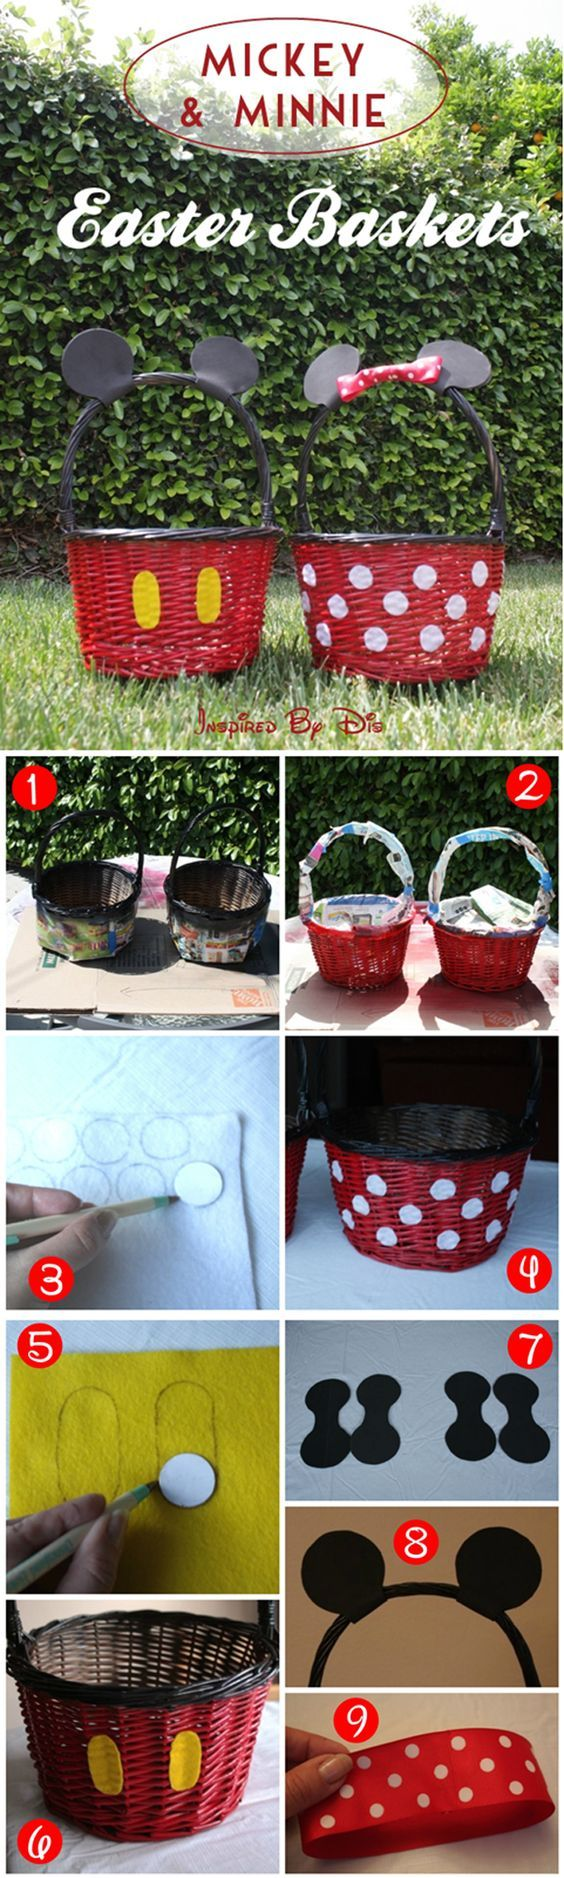 Make a Minnie Mouse or Mickey Mouse Easter Basket